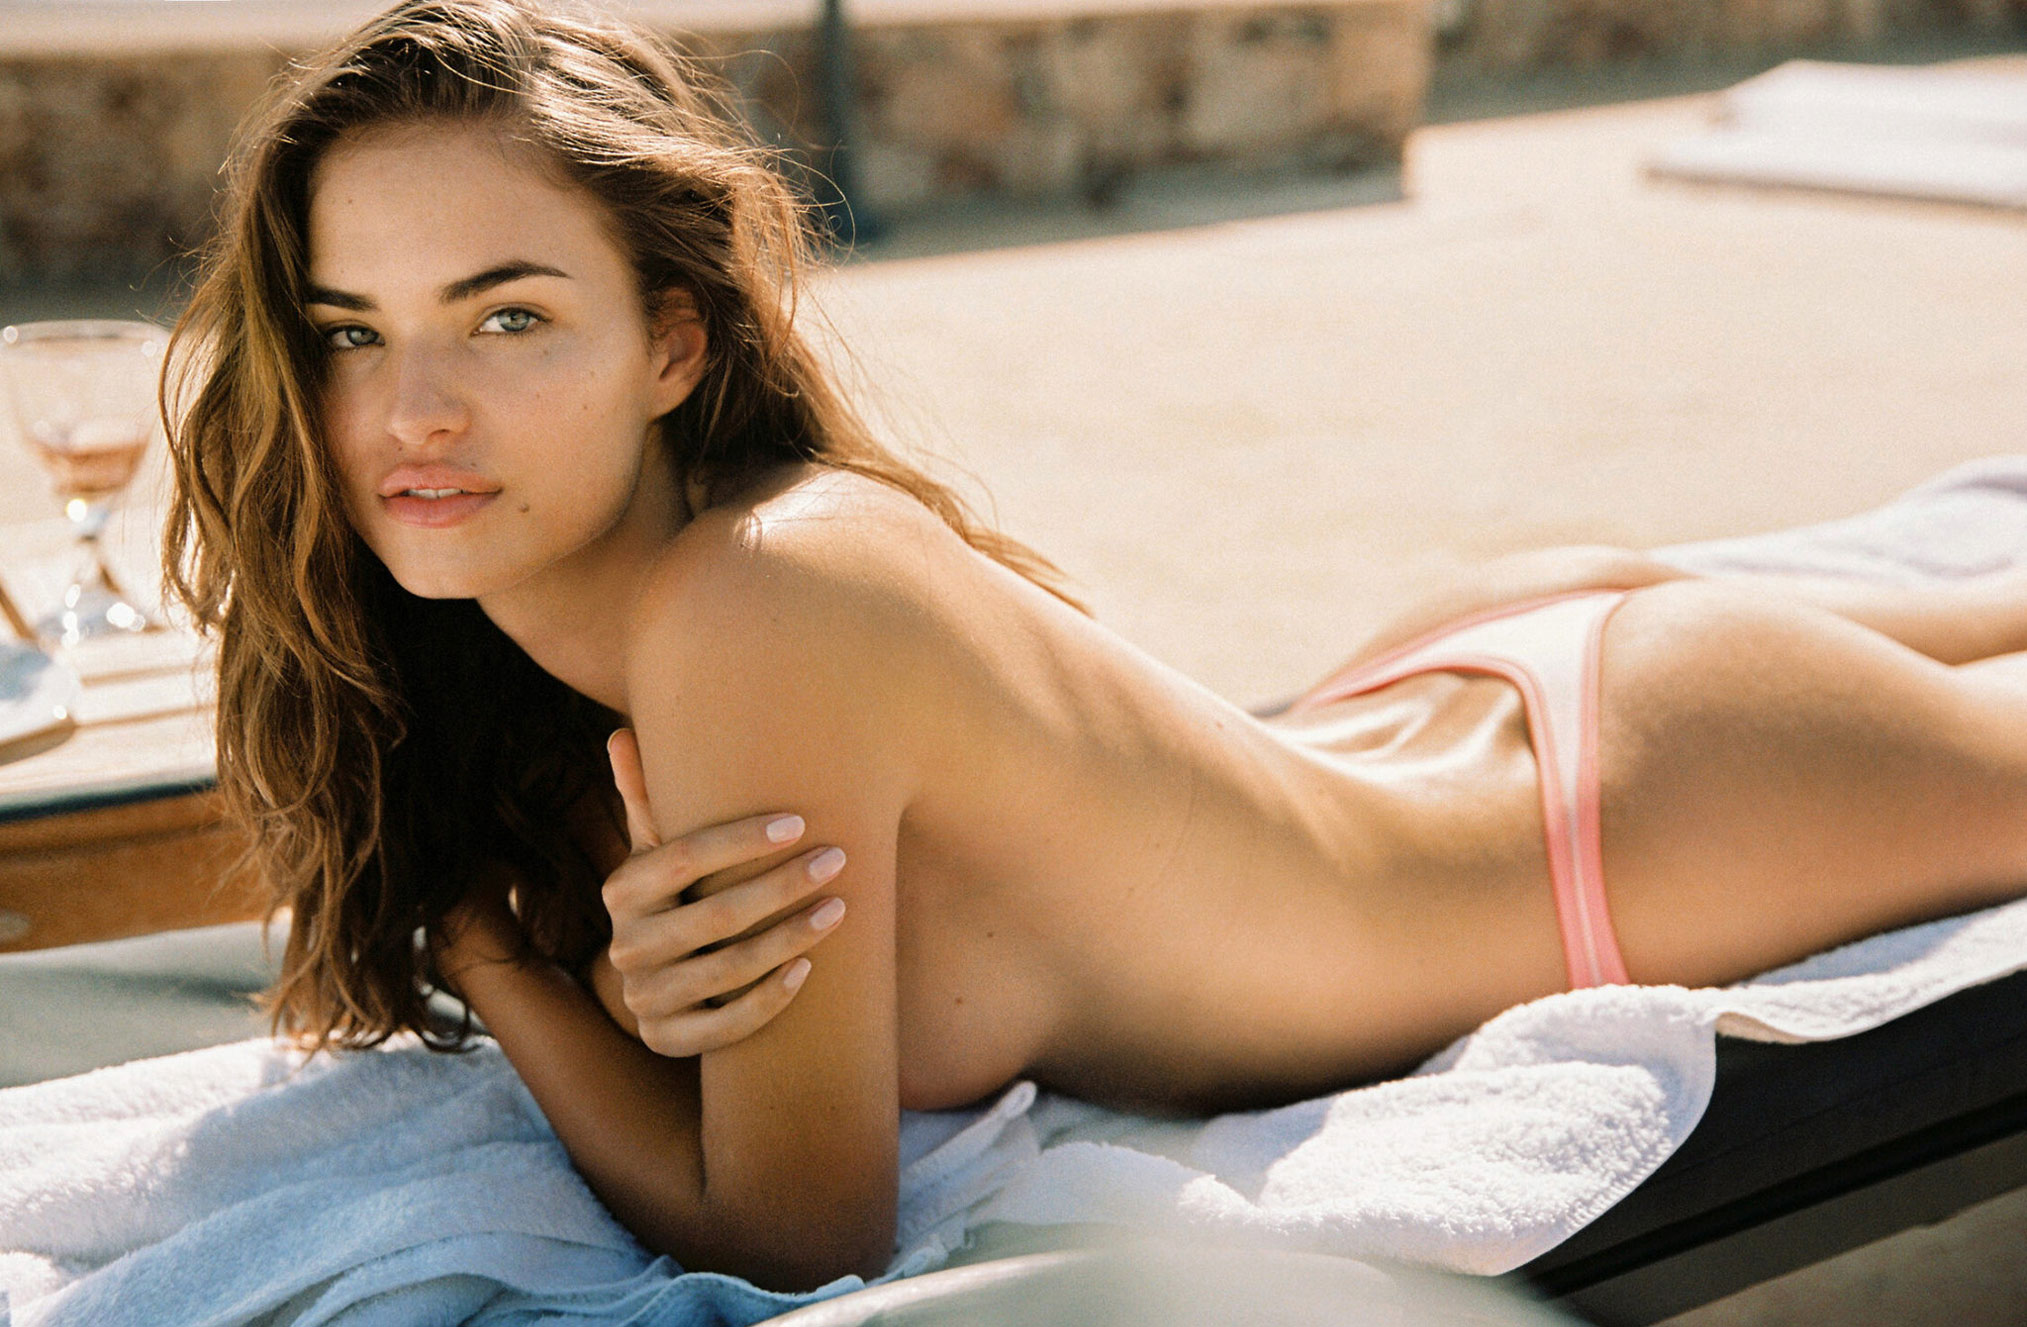 Lotta Kaijarvi and Robin Holzken by Cameron Hammond / фото 07